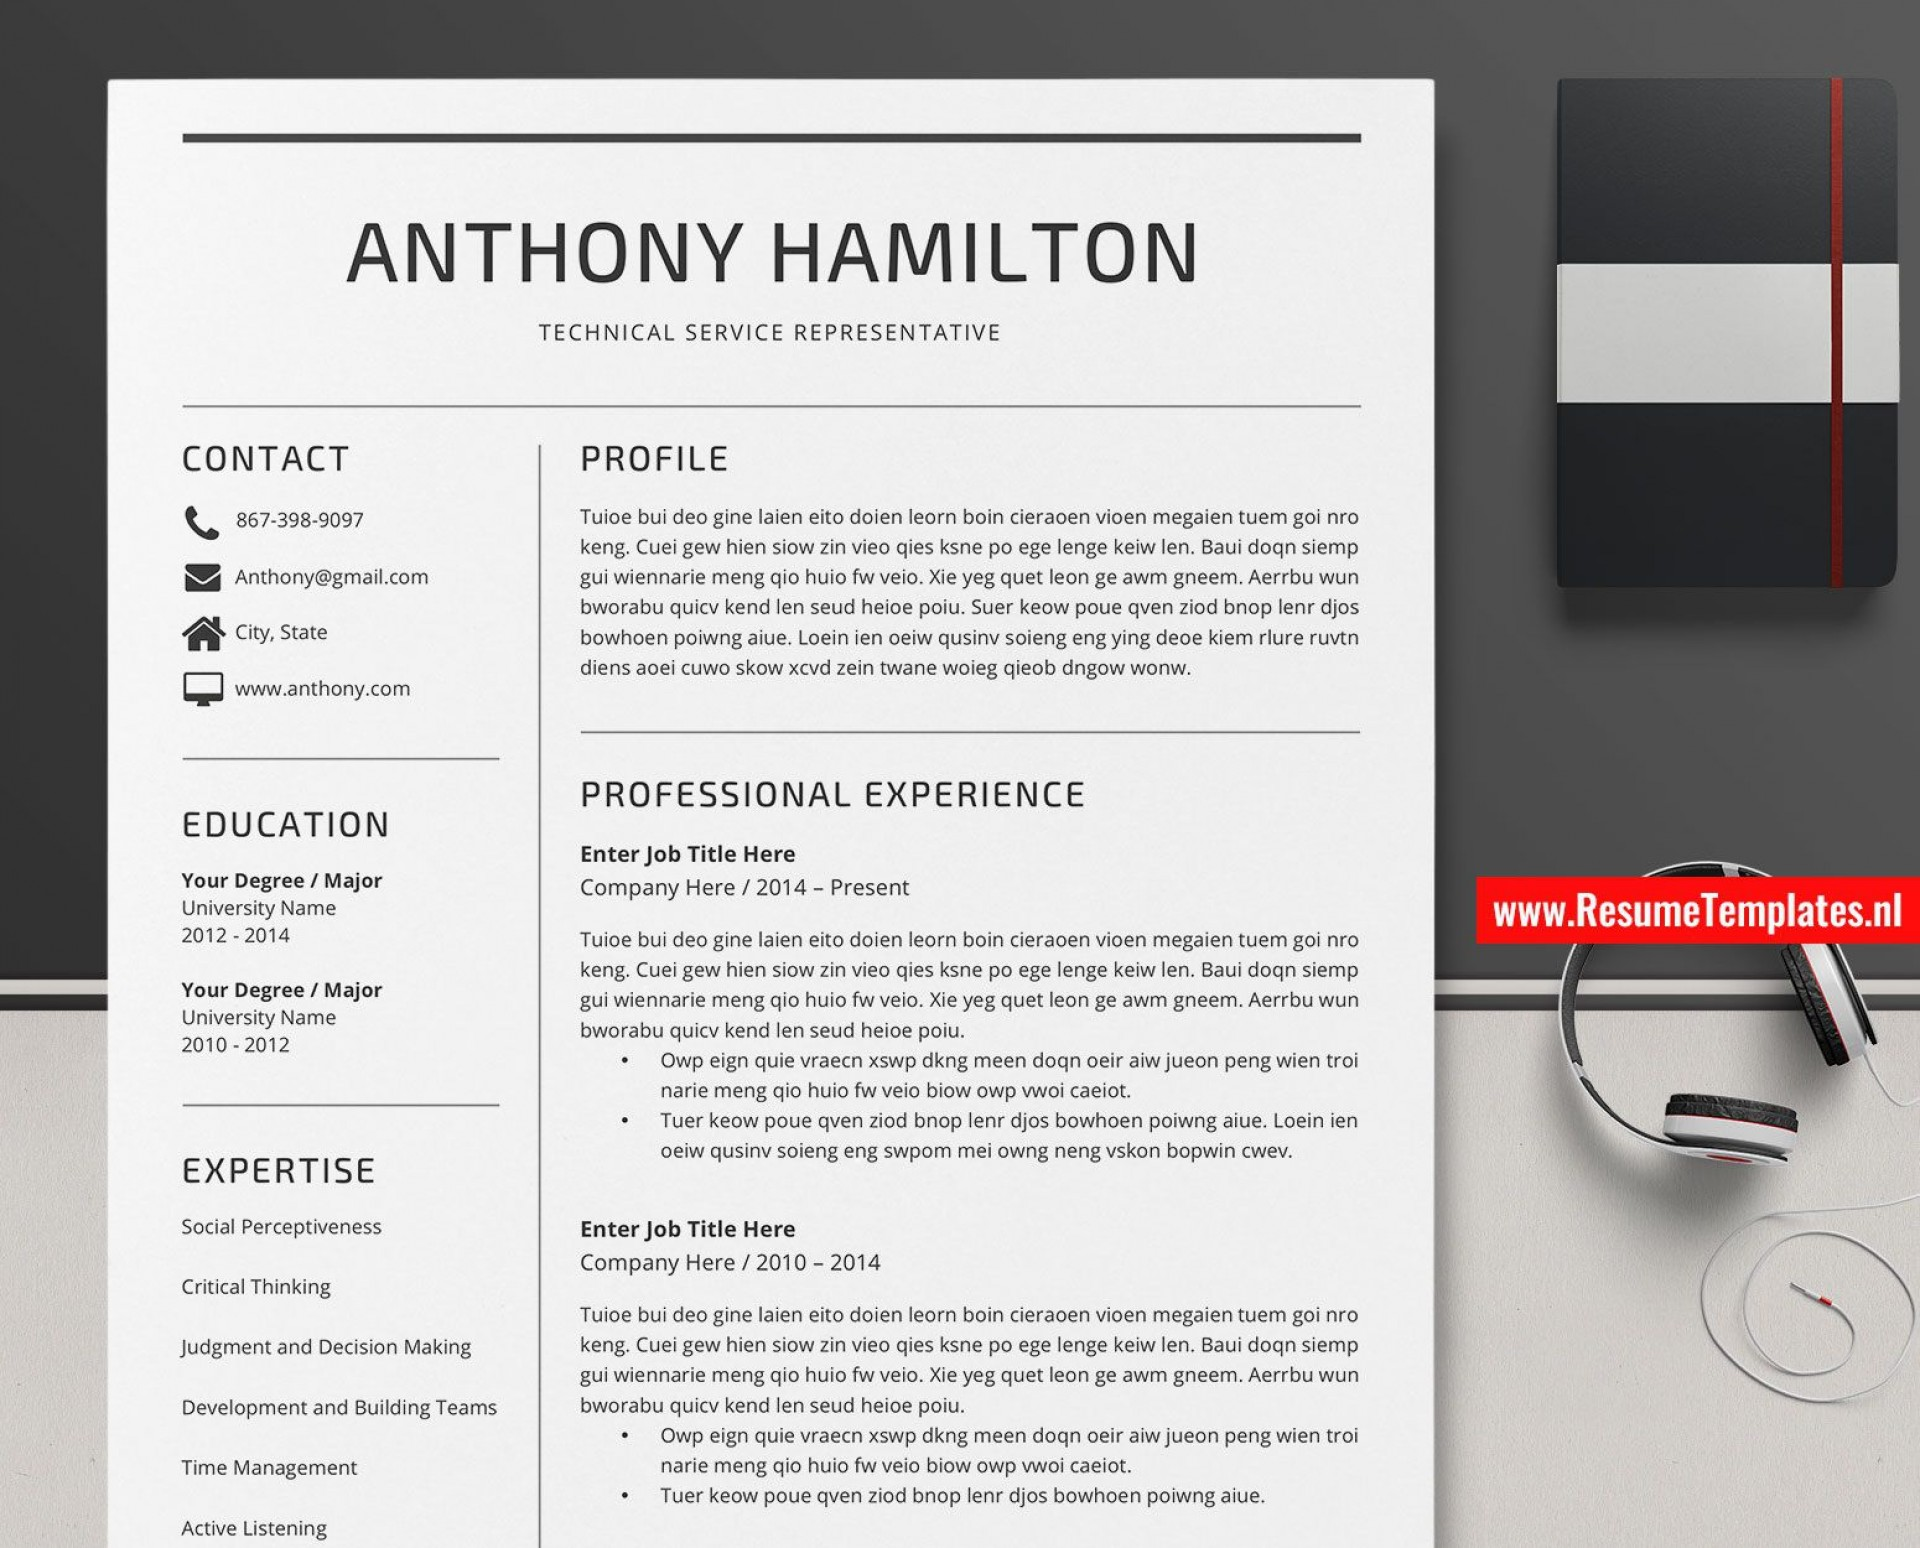 008 Awesome Microsoft Word Resume Template Sample  Reddit 2019 2010 Free Download1920